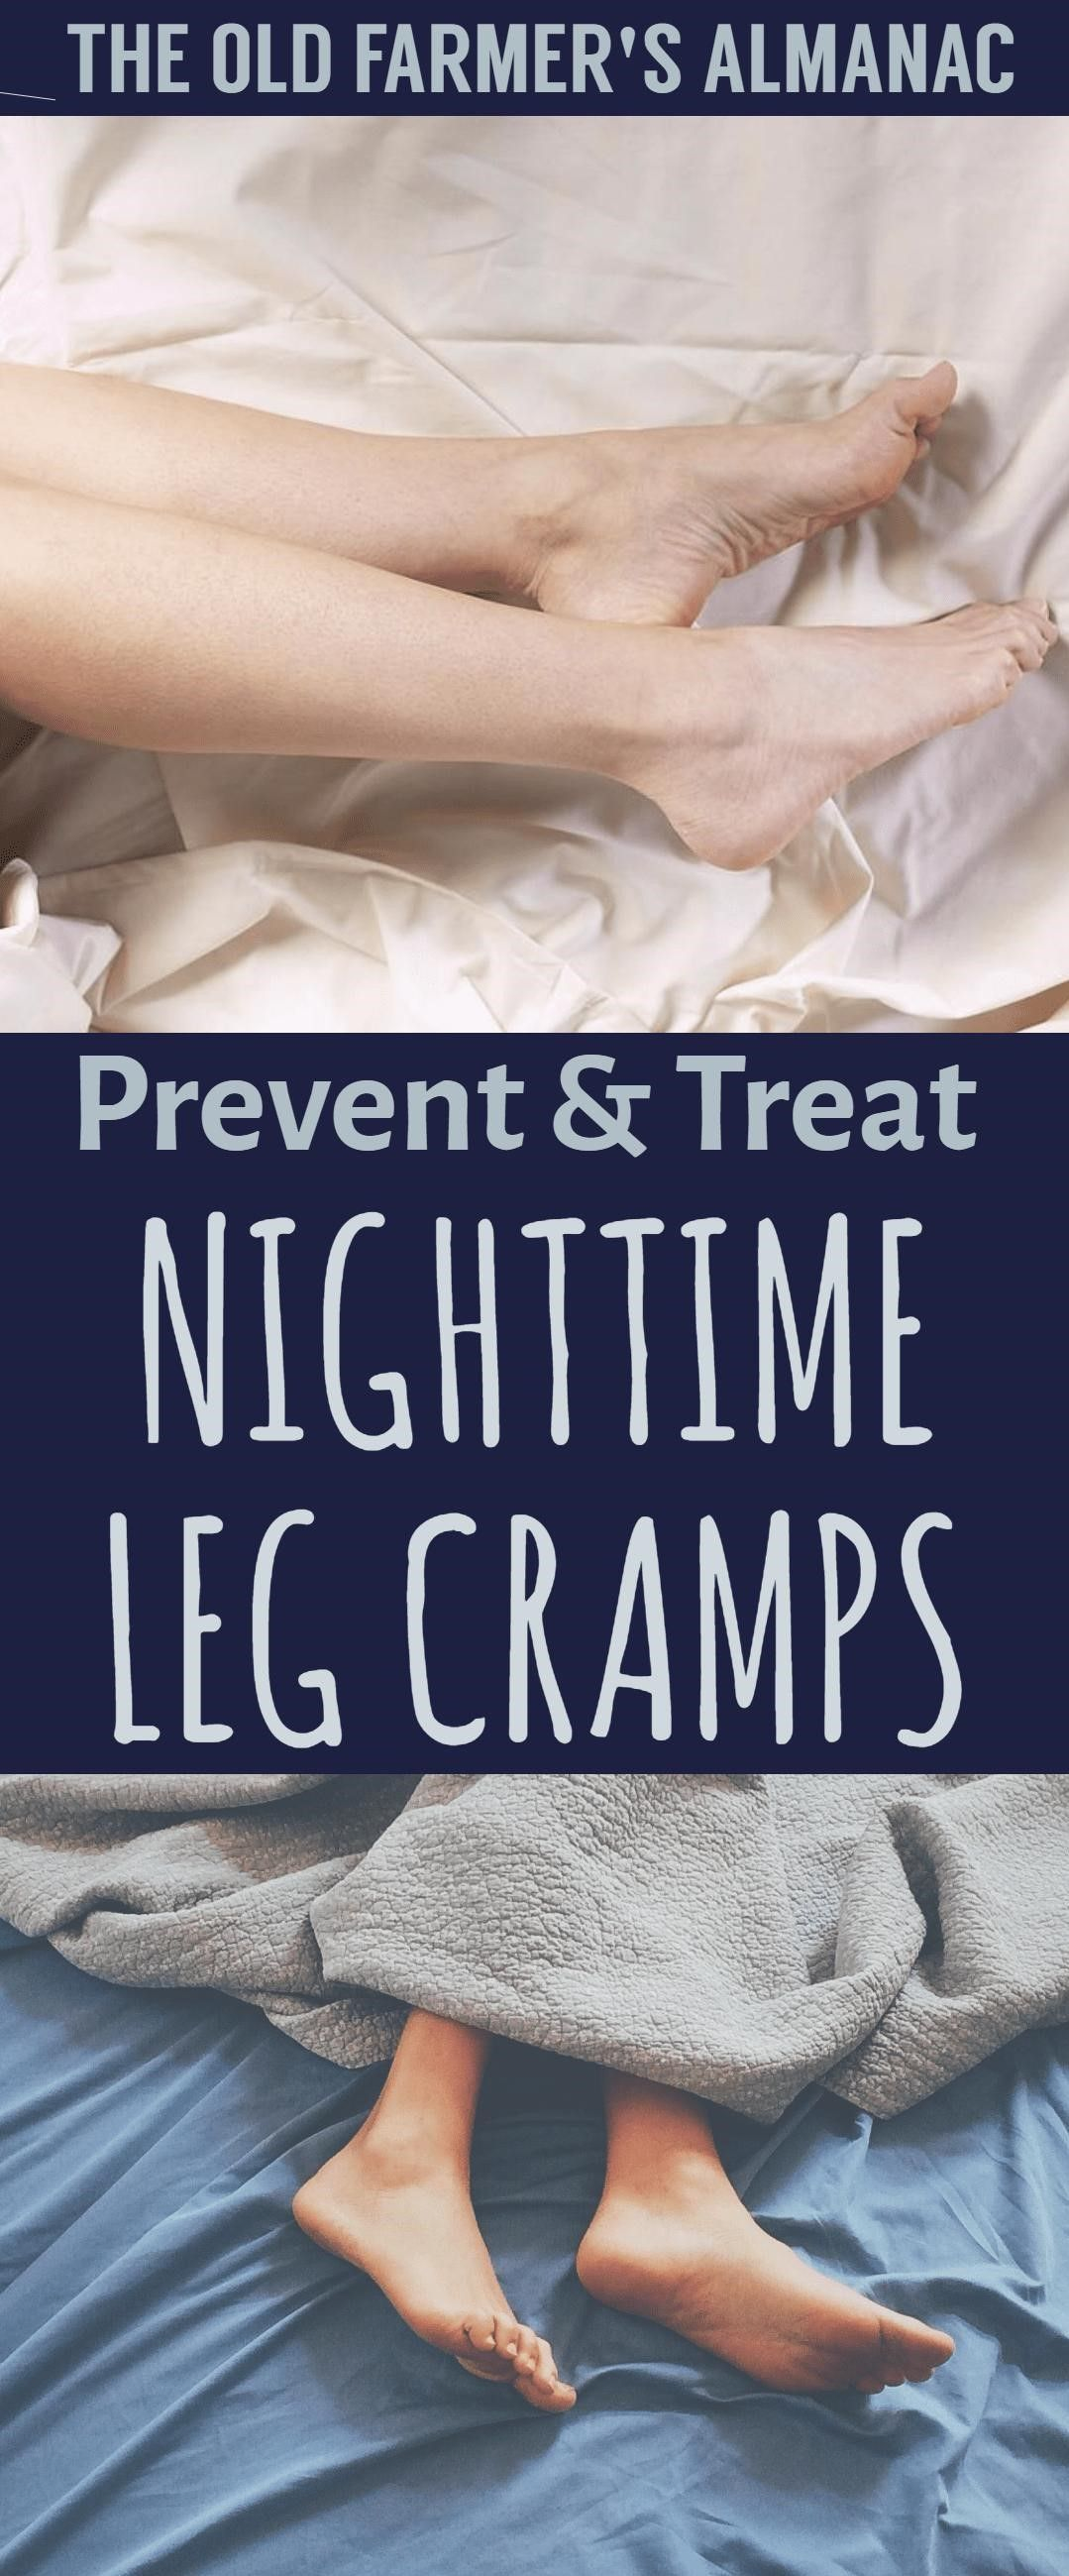 Treat And Prevent Nighttime Leg Cramps Tips Tricks And Methods To